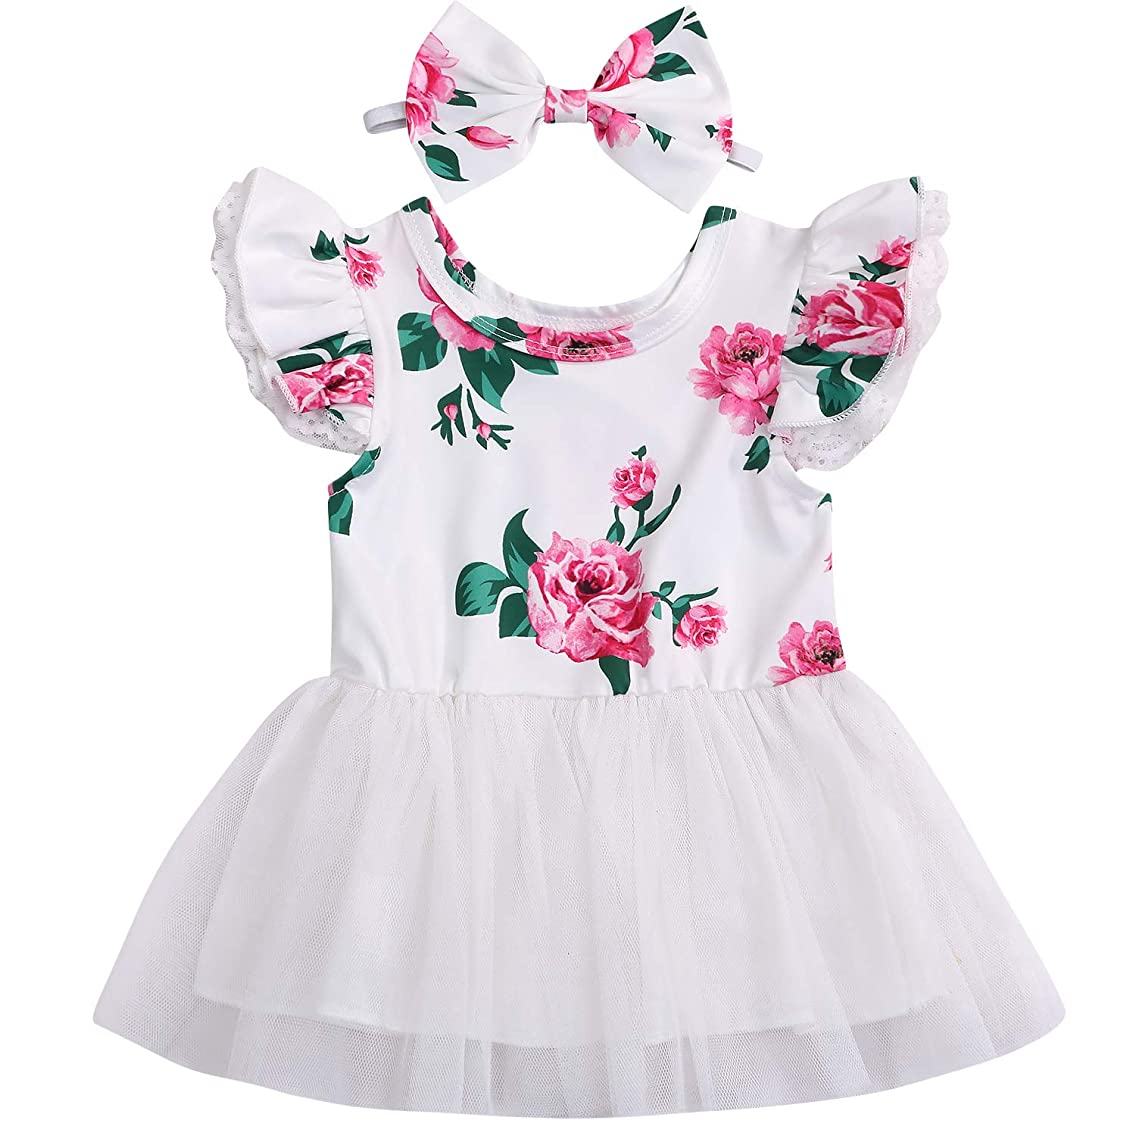 Baby Girls Floral Tutu Dress Toddler Ruffle Sleeve Tulle Dress+Bow Headband Flower Princess 2Pcs Outfit